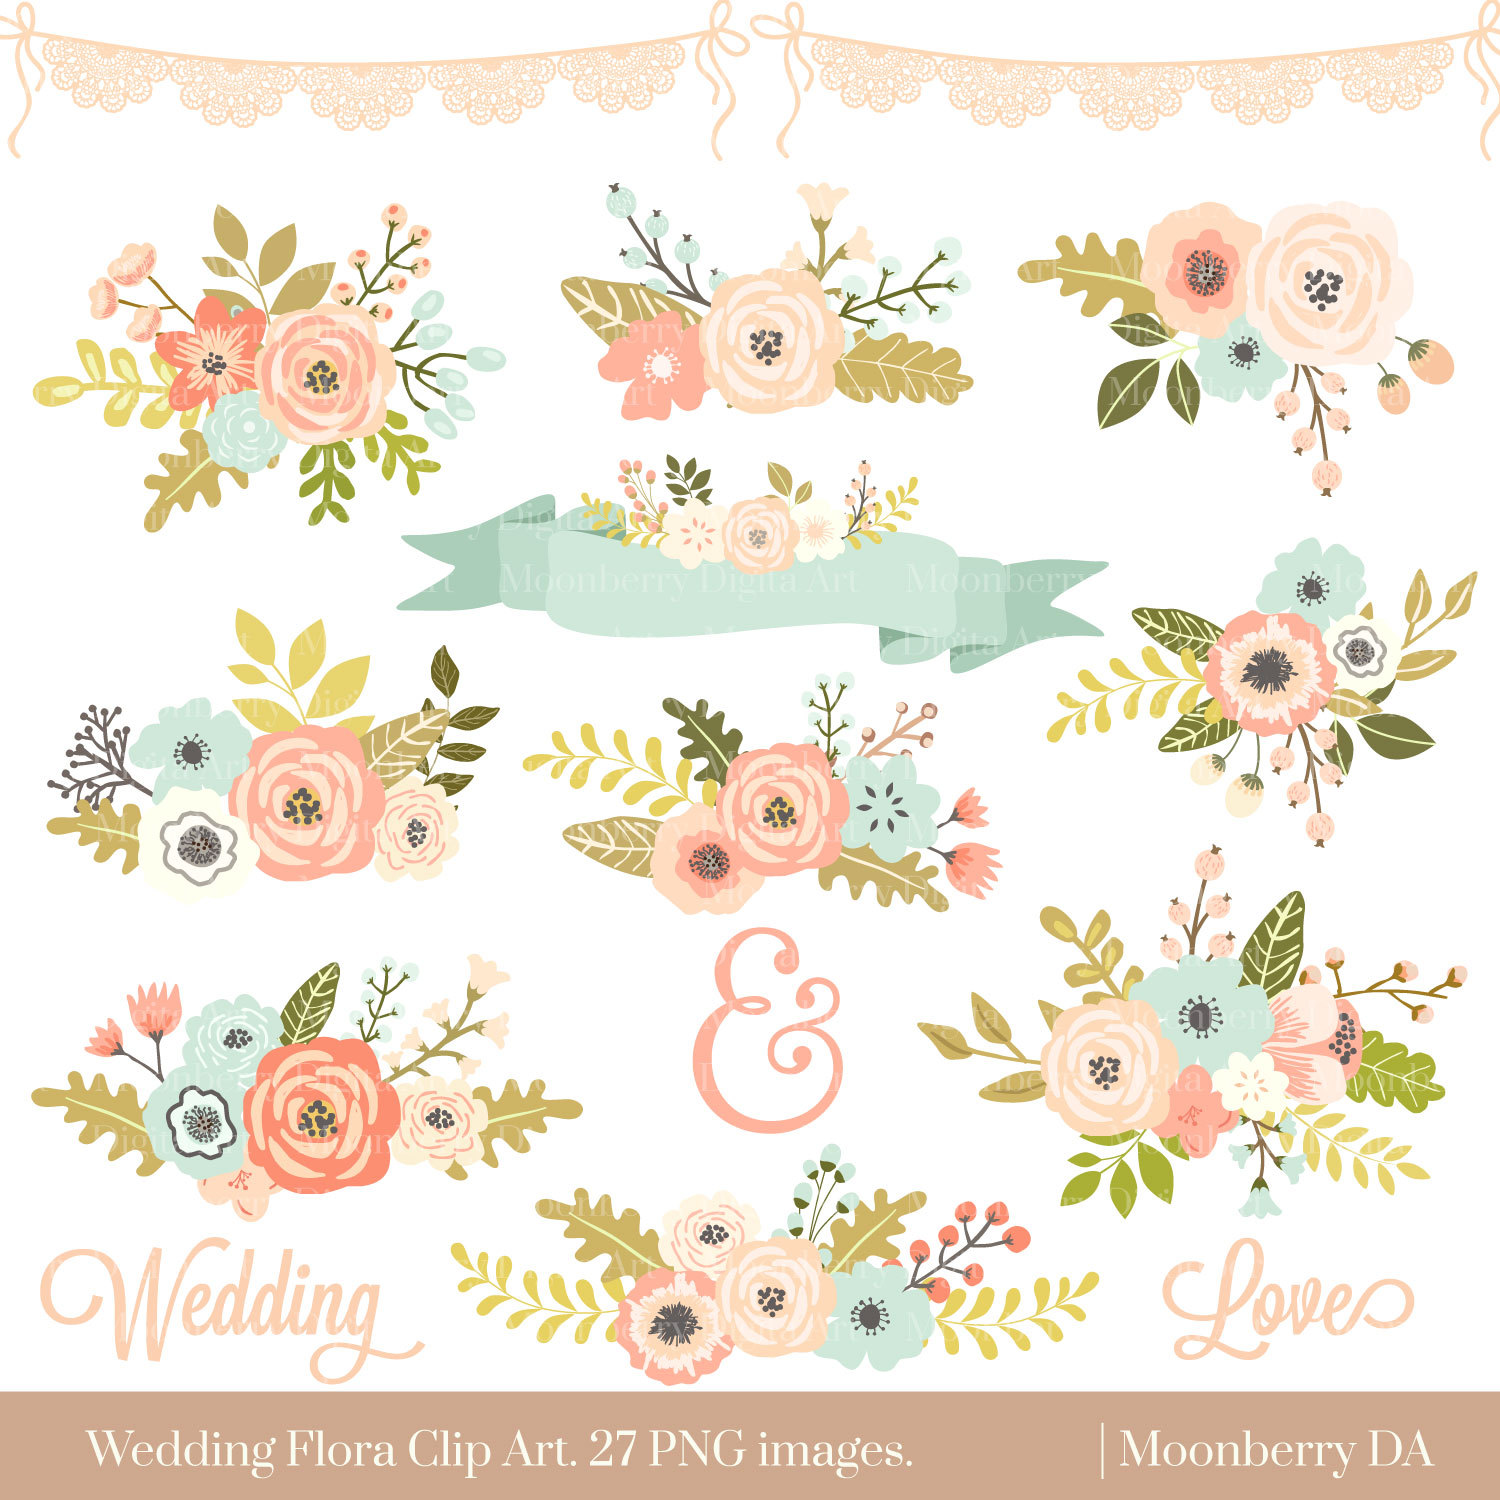 Floral clipart #18, Download drawings